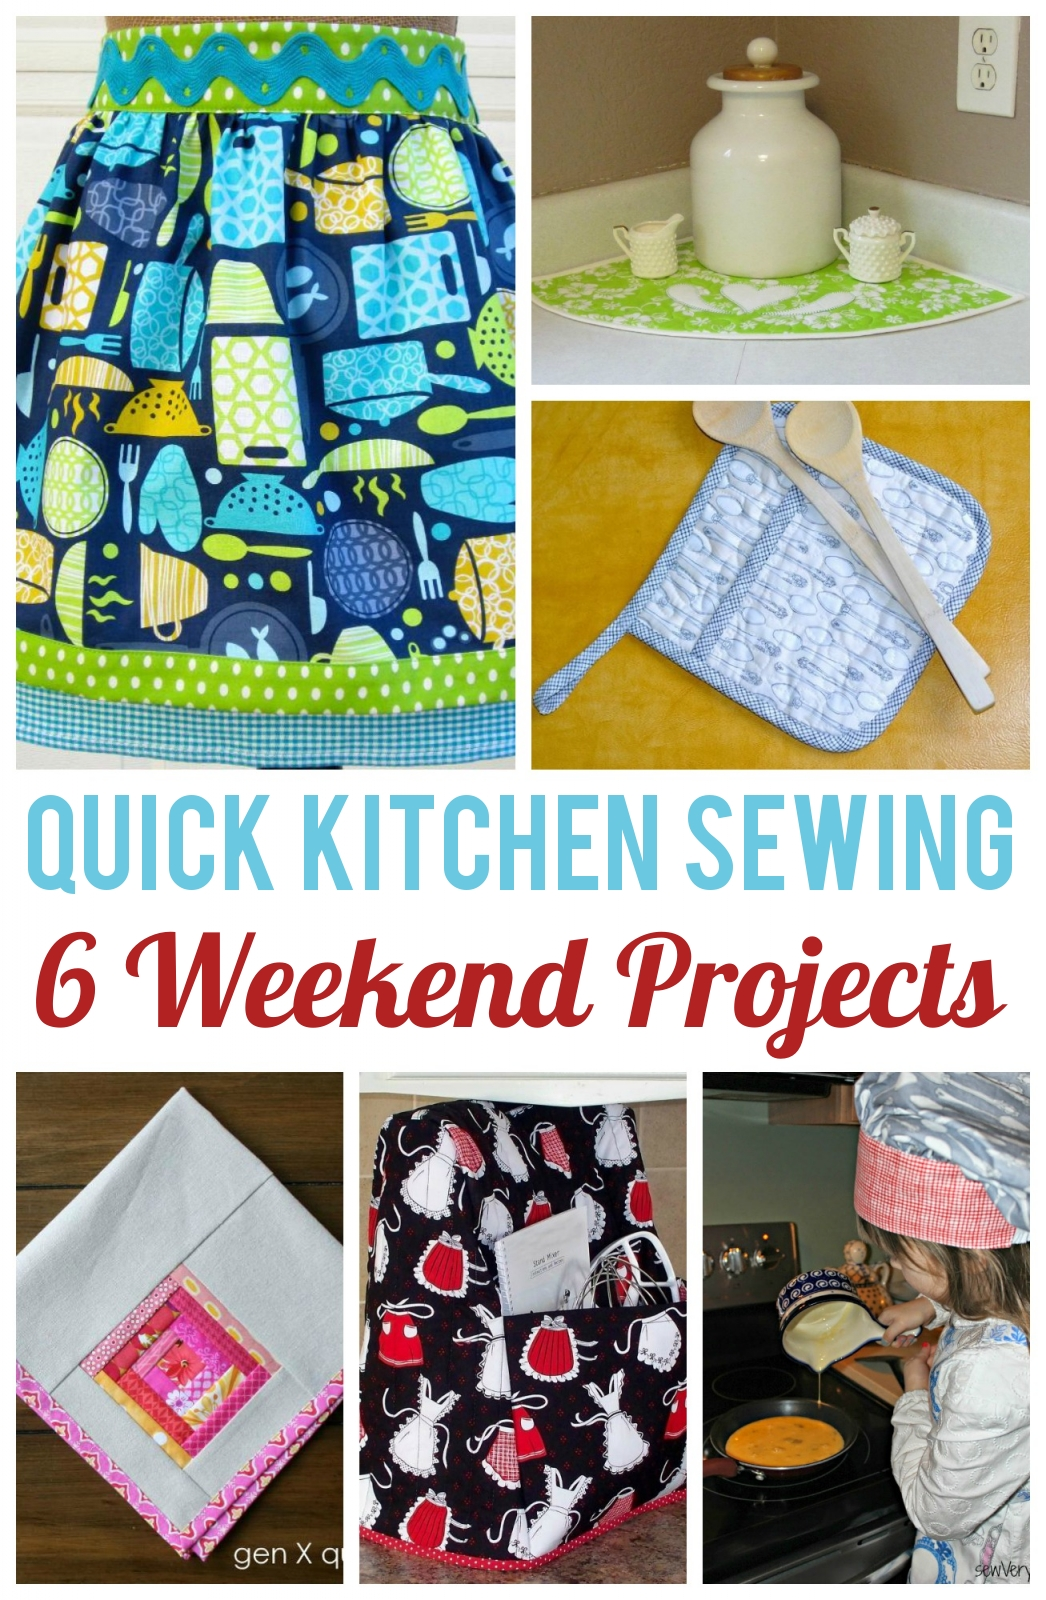 Weekend Sewing: 6 Kitchen Projects